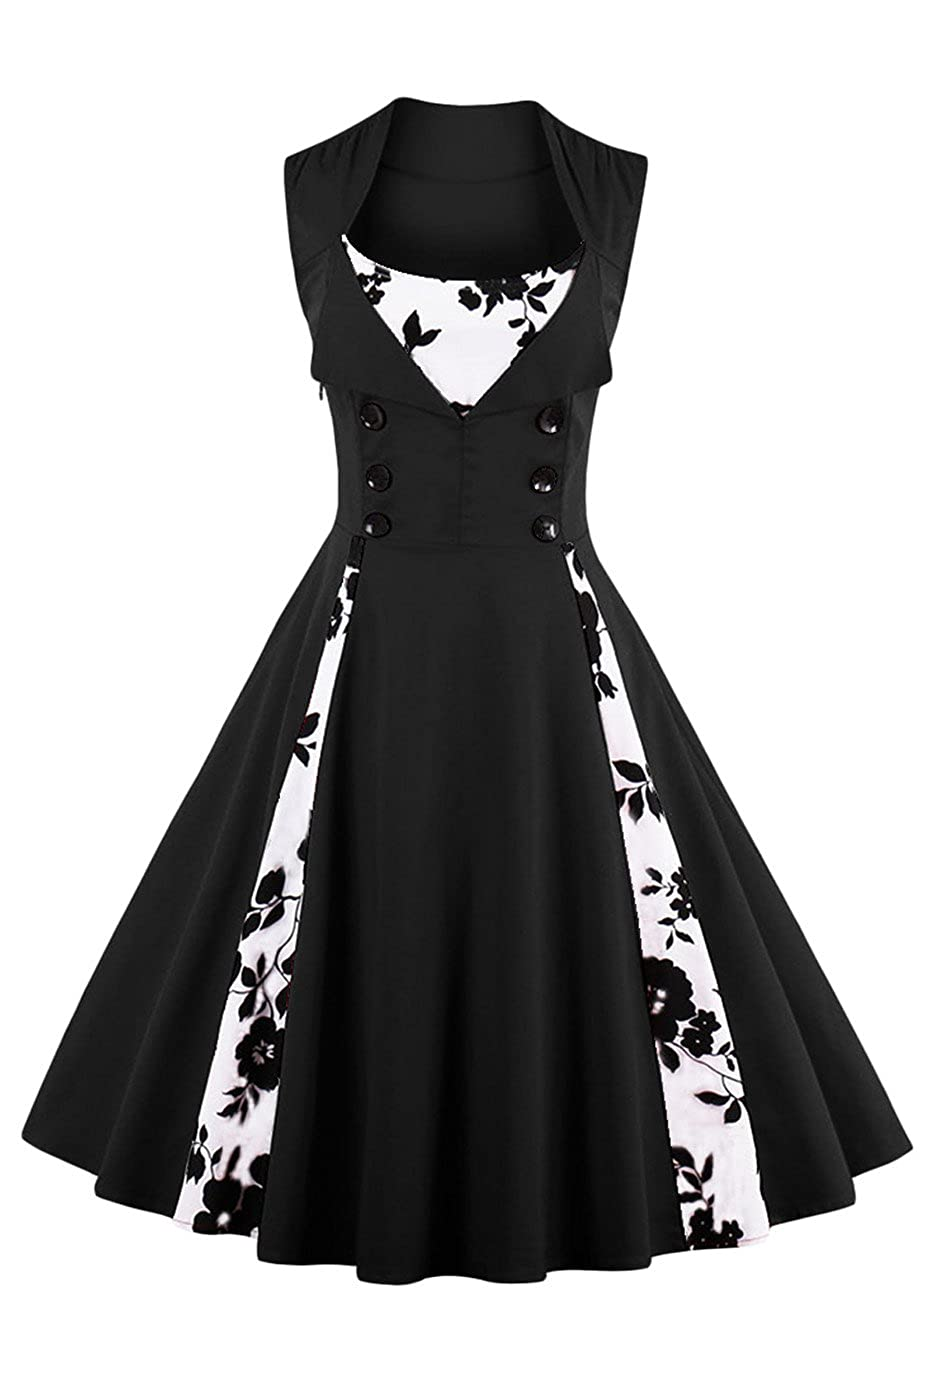 TALLA M. VERNASSA 50s Vestidos Vintage,Mujeres 1950s Vintage A-Line Rockabilly Clásico Verano Dress for Evening Party Cocktail, Multicolor, S-Plus Size 4XL 1357f-negro